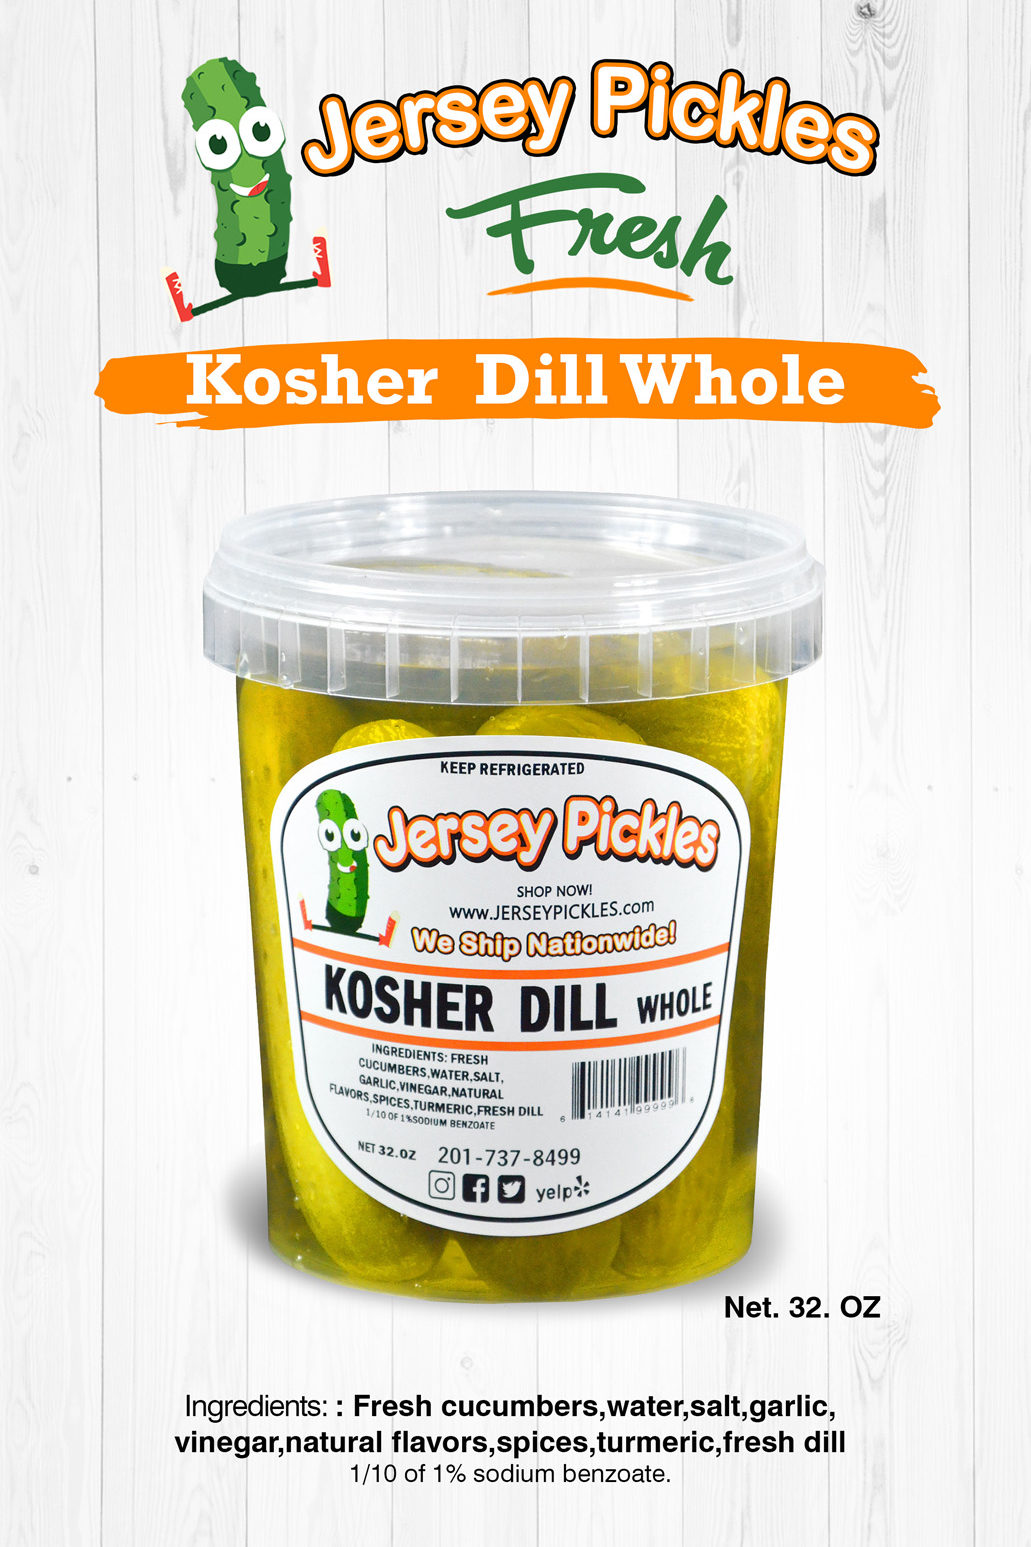 Kosher Dill Whole